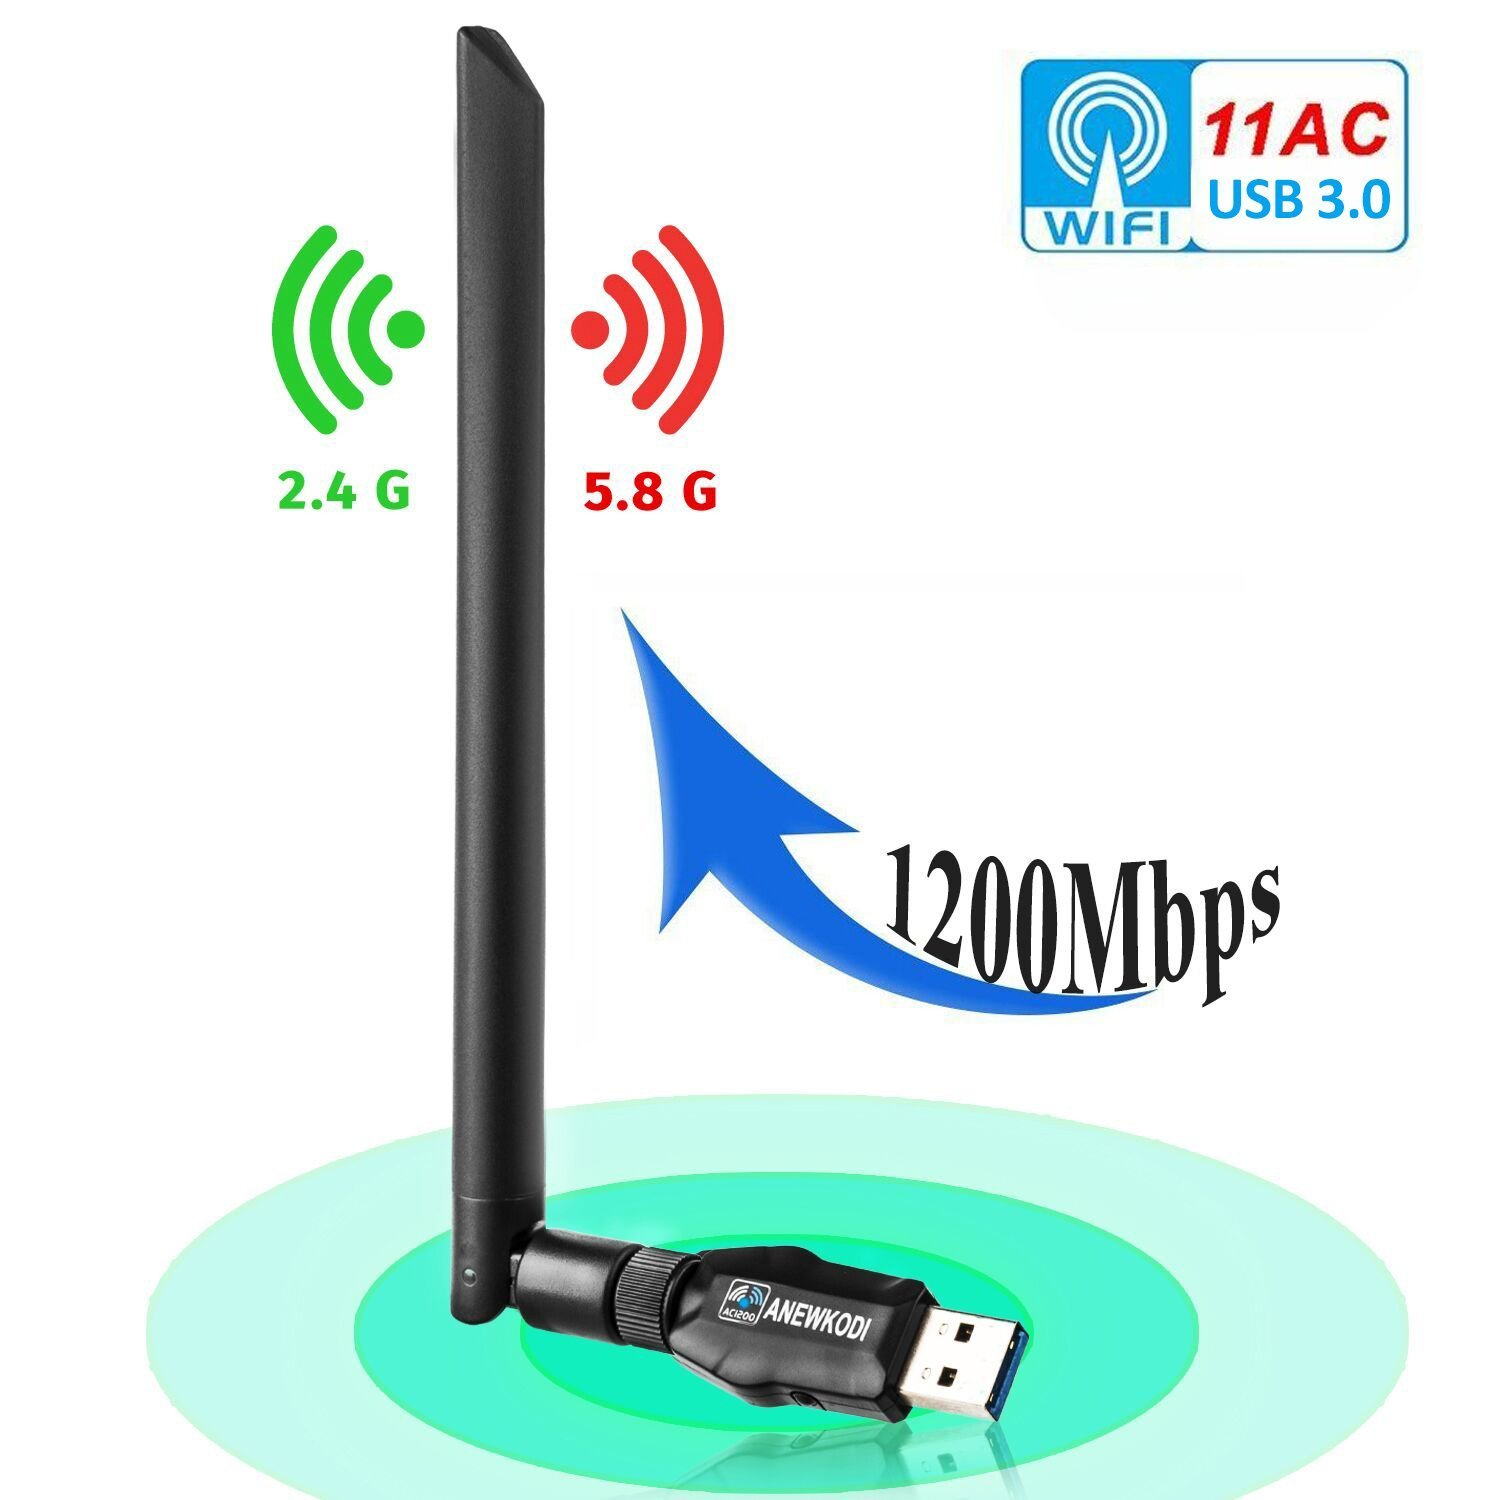 ANEWKODI USB WiFi Adapter, USB Wireless Adapter 1200Mbps 3.0 Dual Band 2.4GHz/5.8GHz Wireless Adapter for Desktop/Laptop/PC, Support Windows 10/8.1/8/7/XP, Mac OS by ANEWKODI